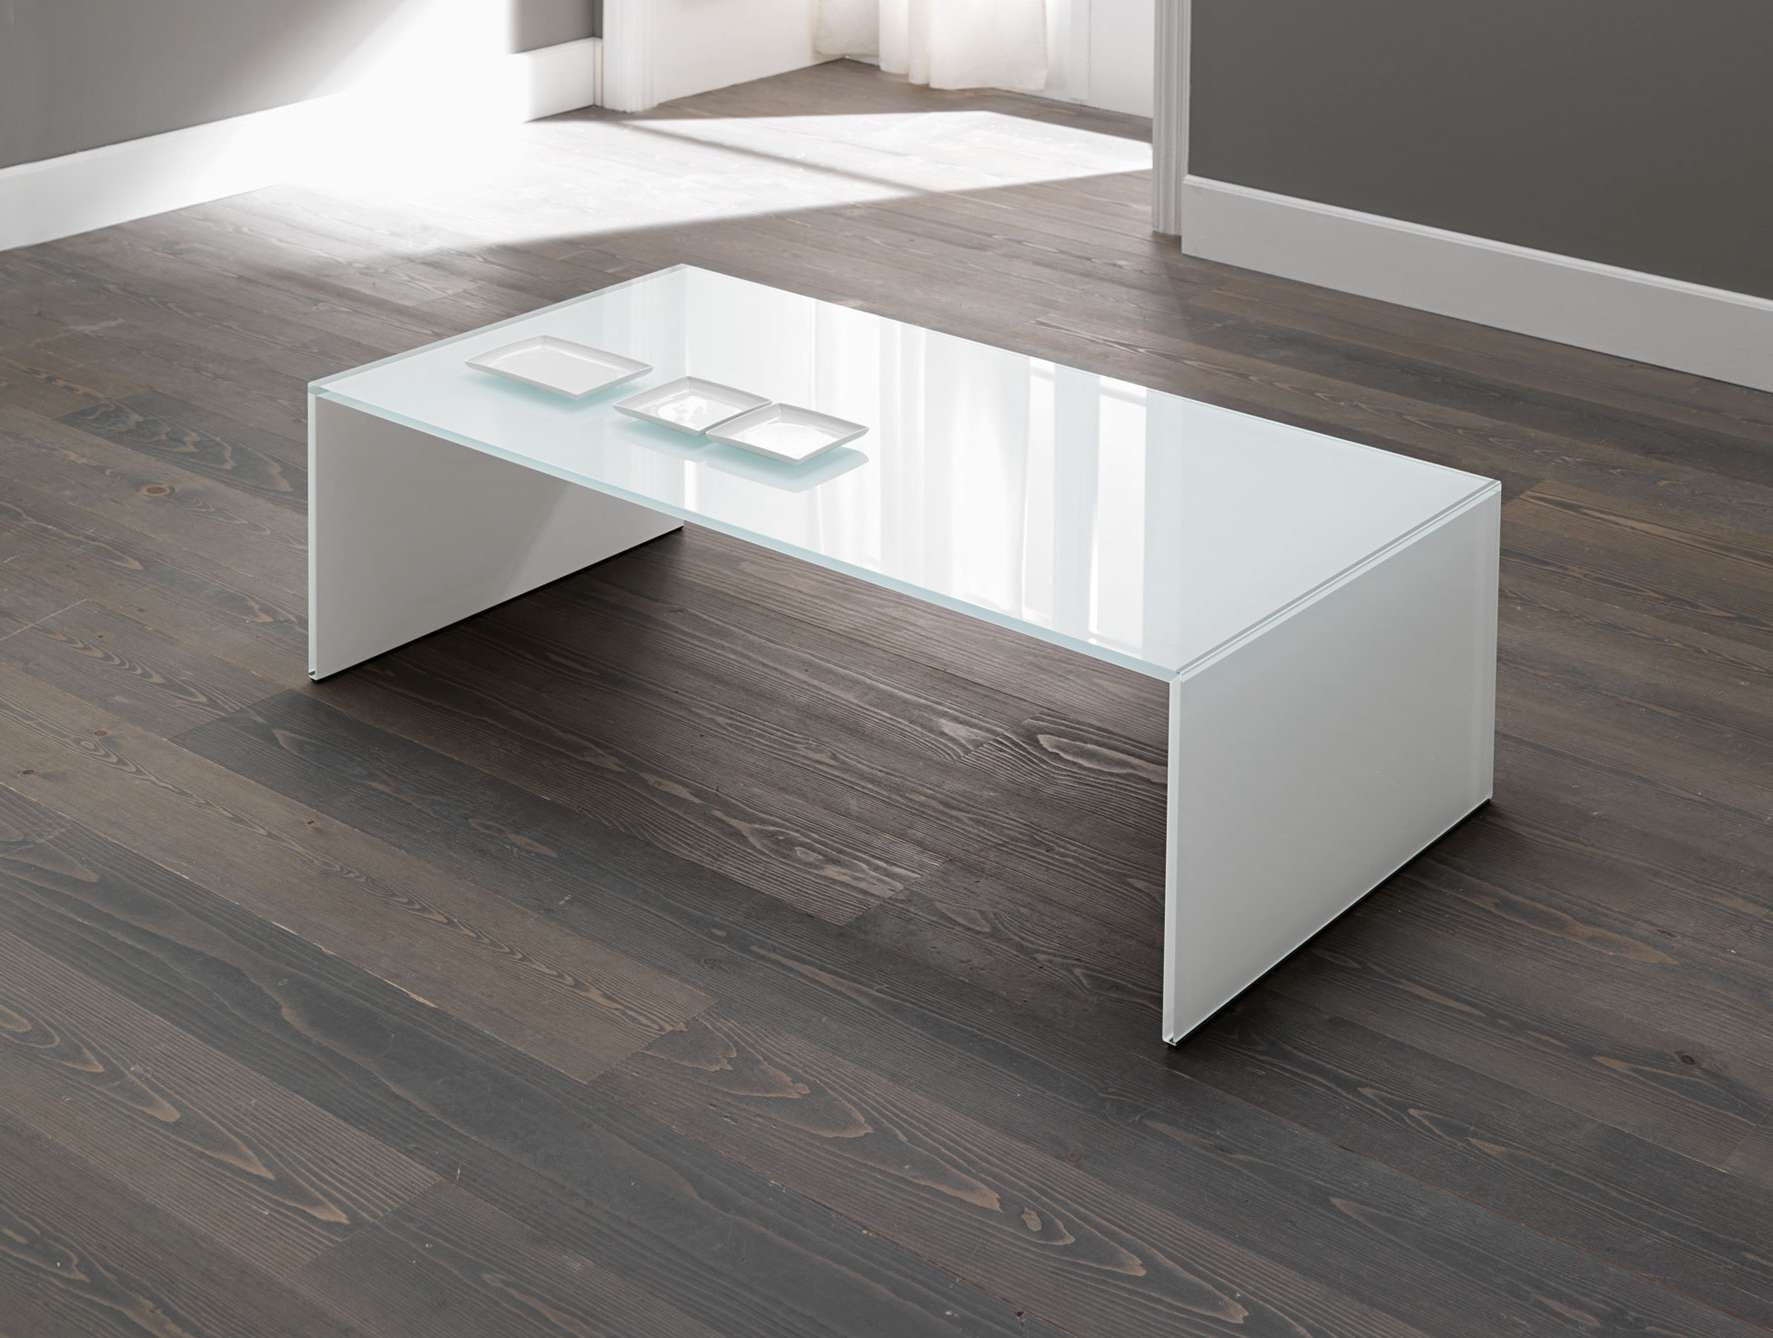 Widely Used White Wood And Glass Coffee Tables With Regard To Coffee Table, Simple Design Modern Coffee Table Featuring (View 12 of 20)